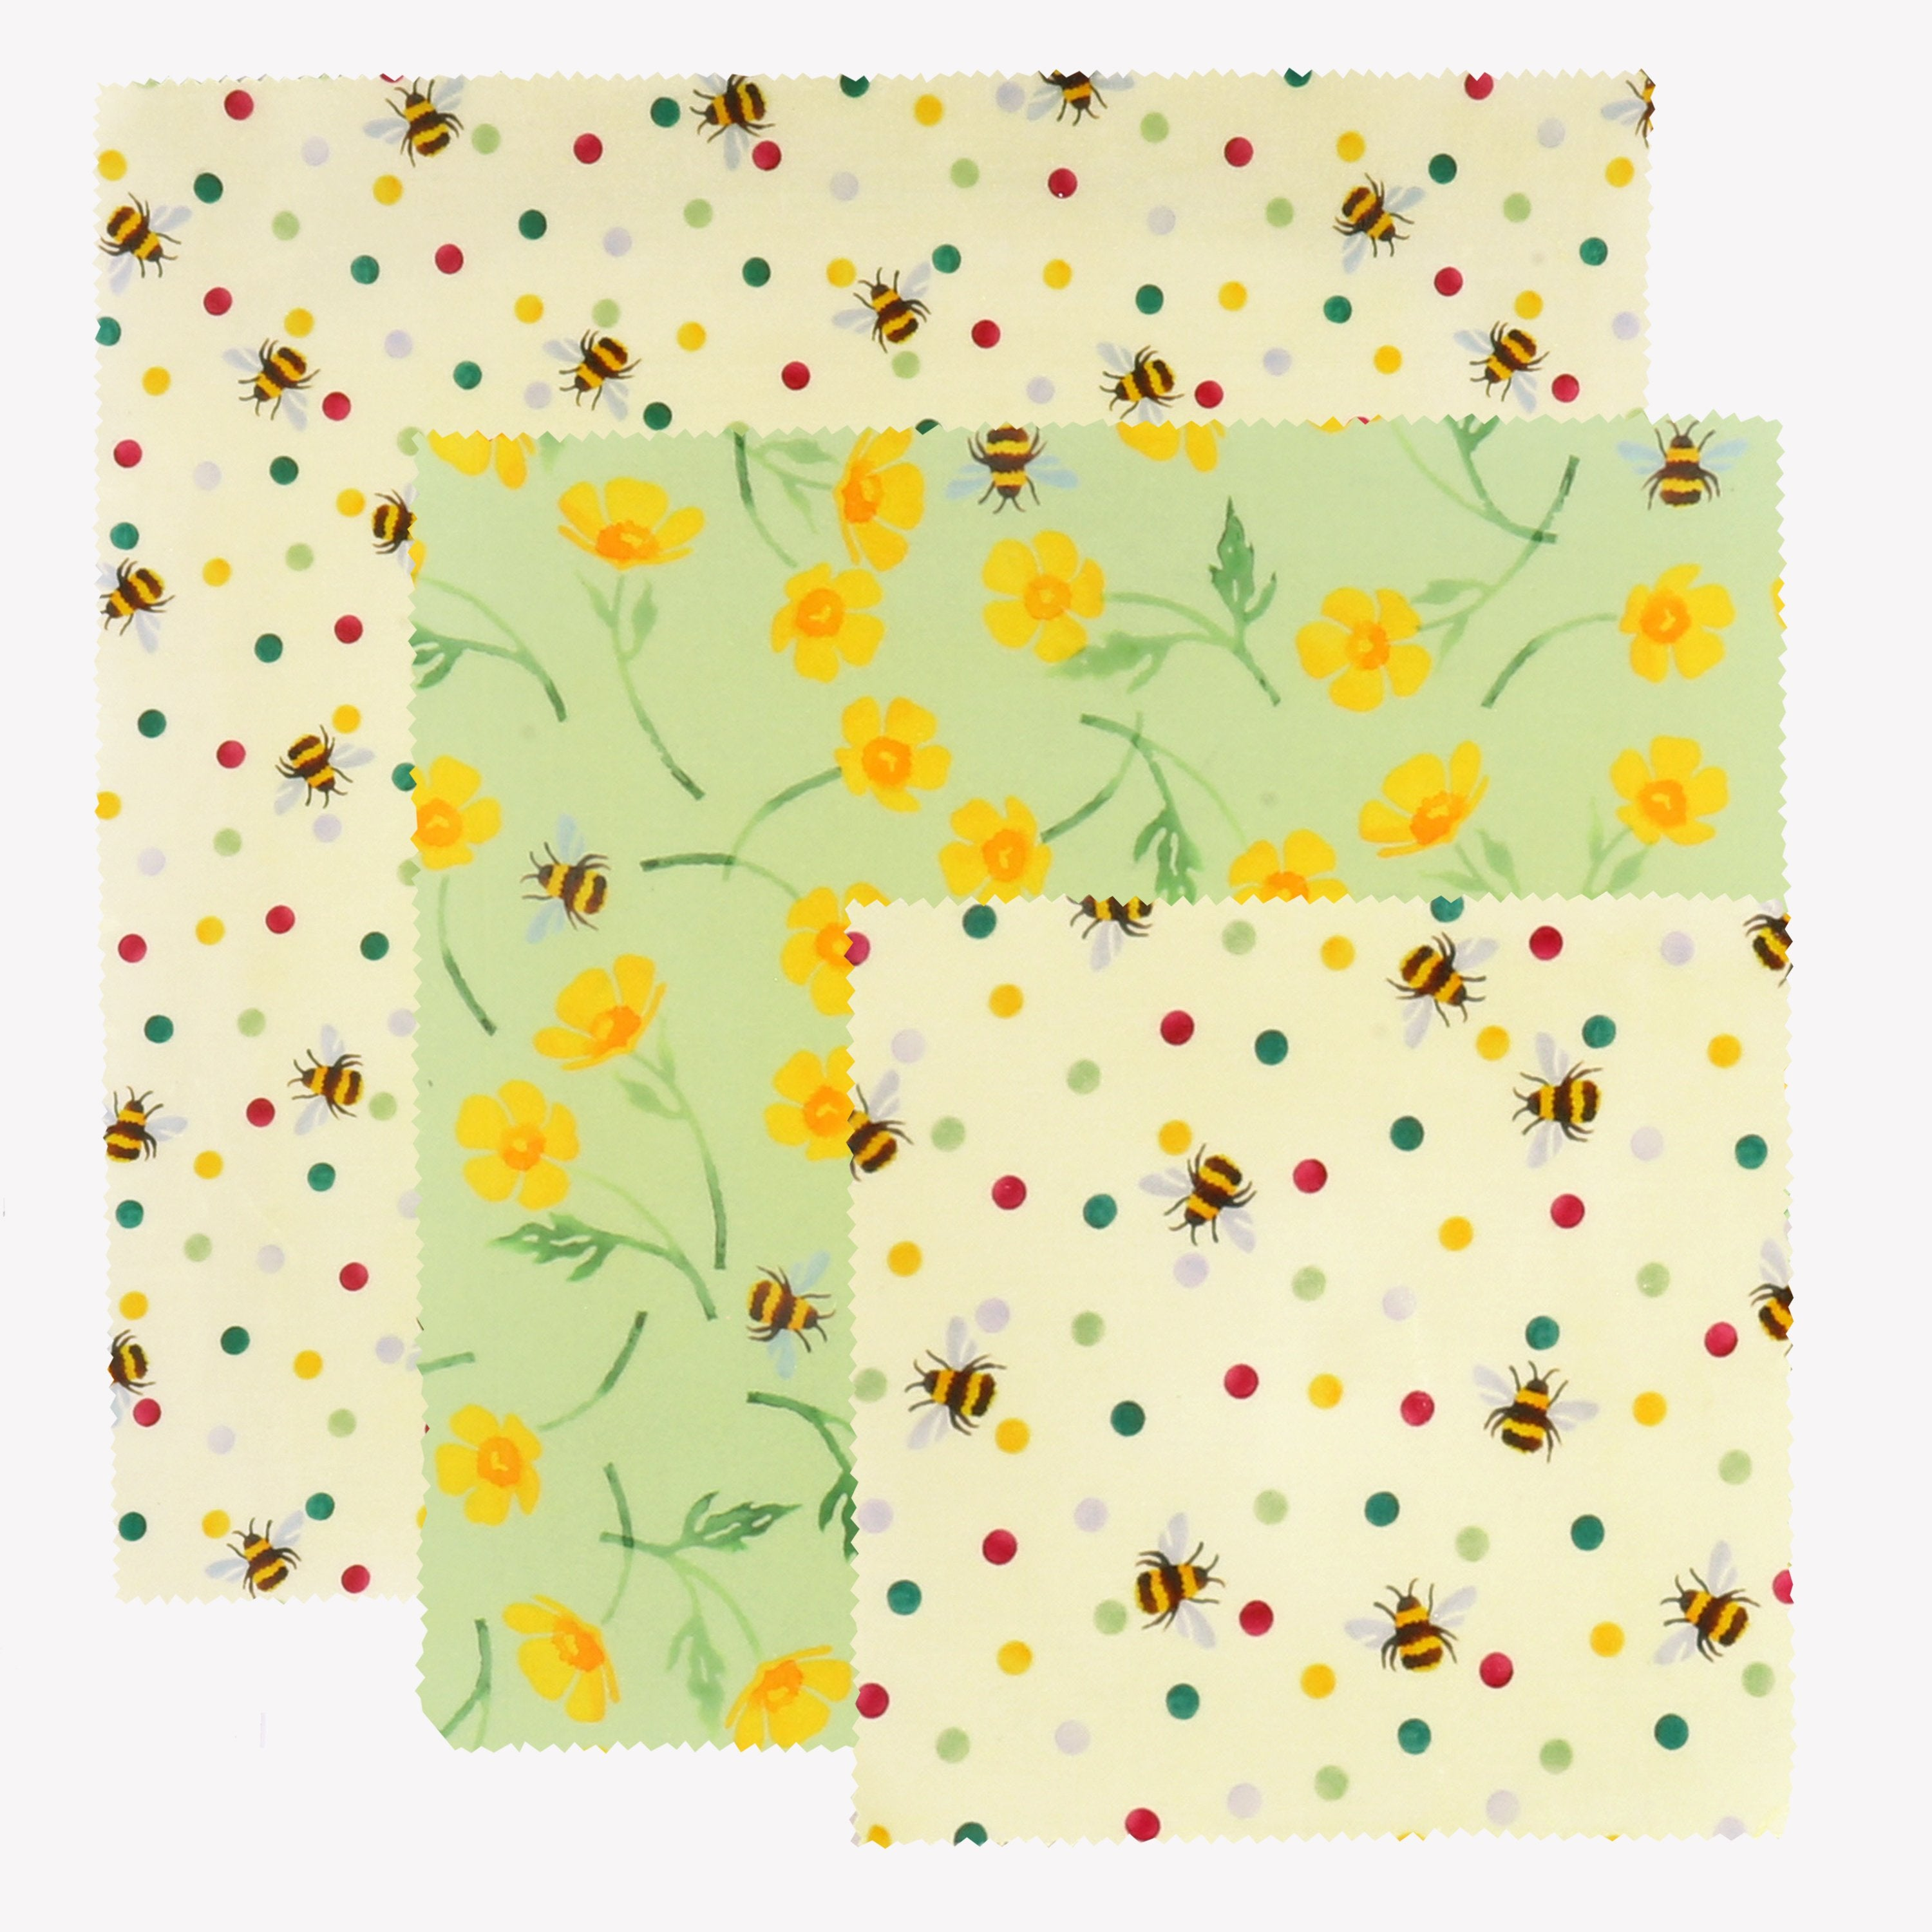 Bees Yellow Flowers Natural Living Accessories Reusable Beeswax Food Wraps and Polka Dots Set of 3 Beeswax Wrap Set